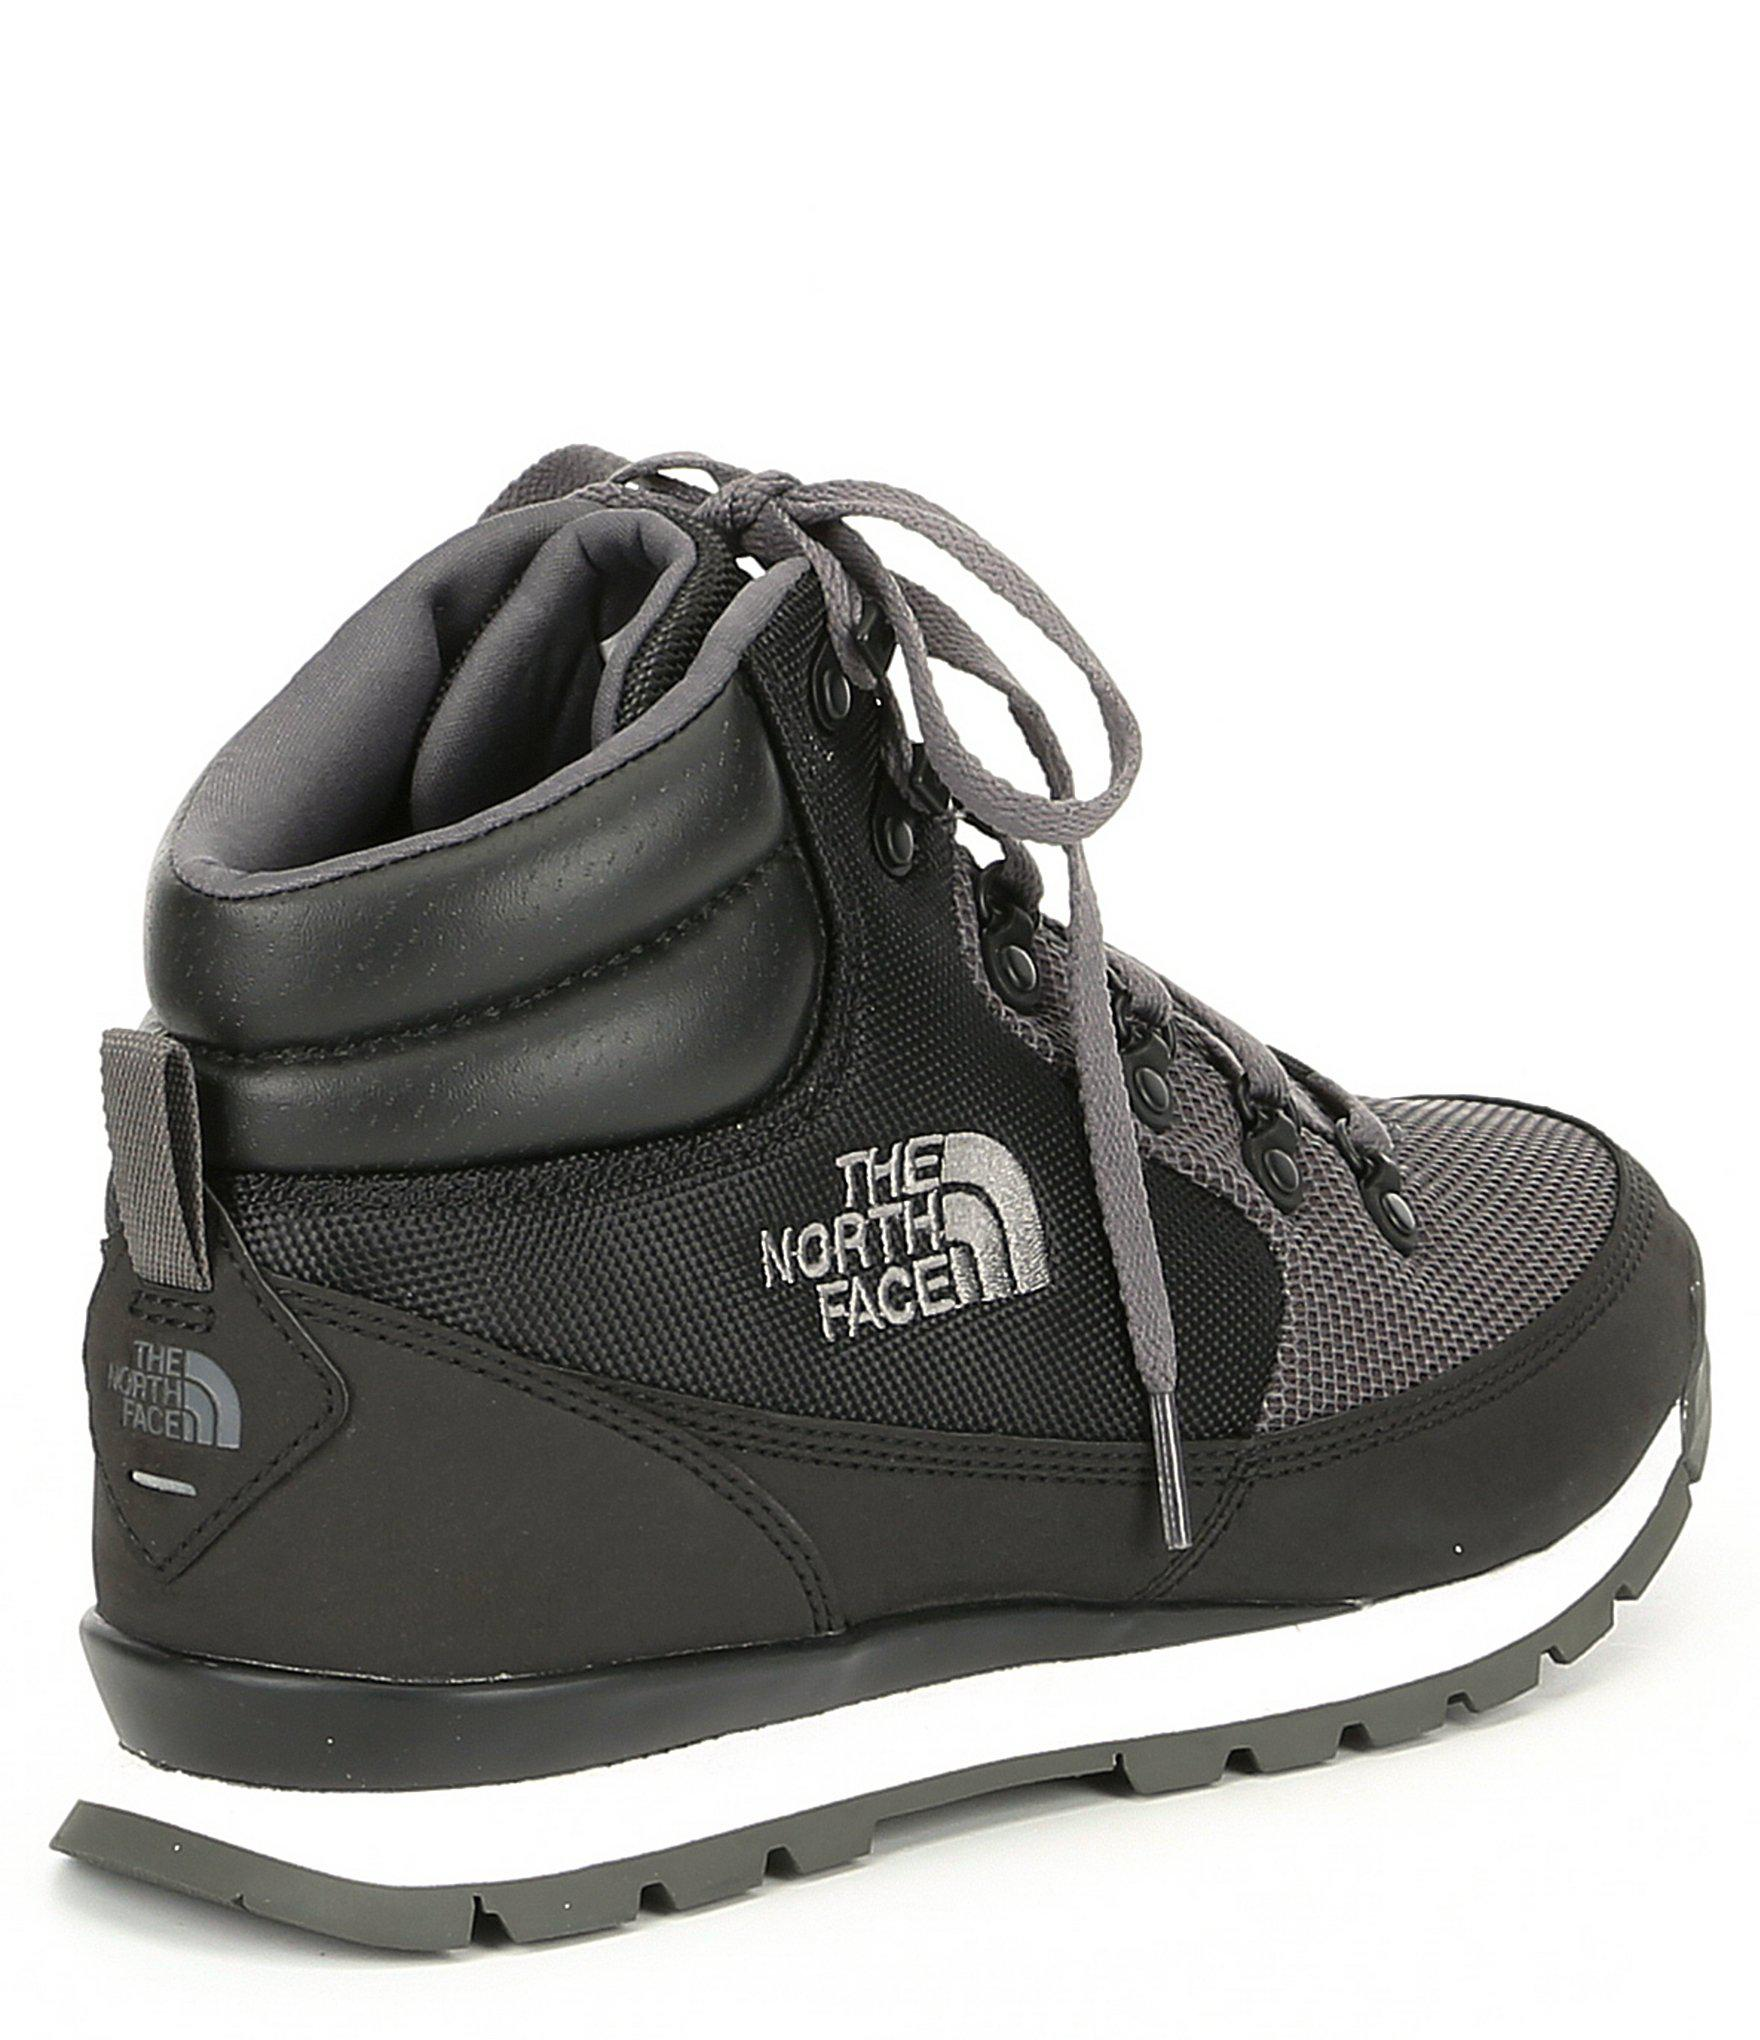 Lyst - The North Face Men s Back To-berkeley Redux Remtlz Mesh Boots ... 07c2f01293